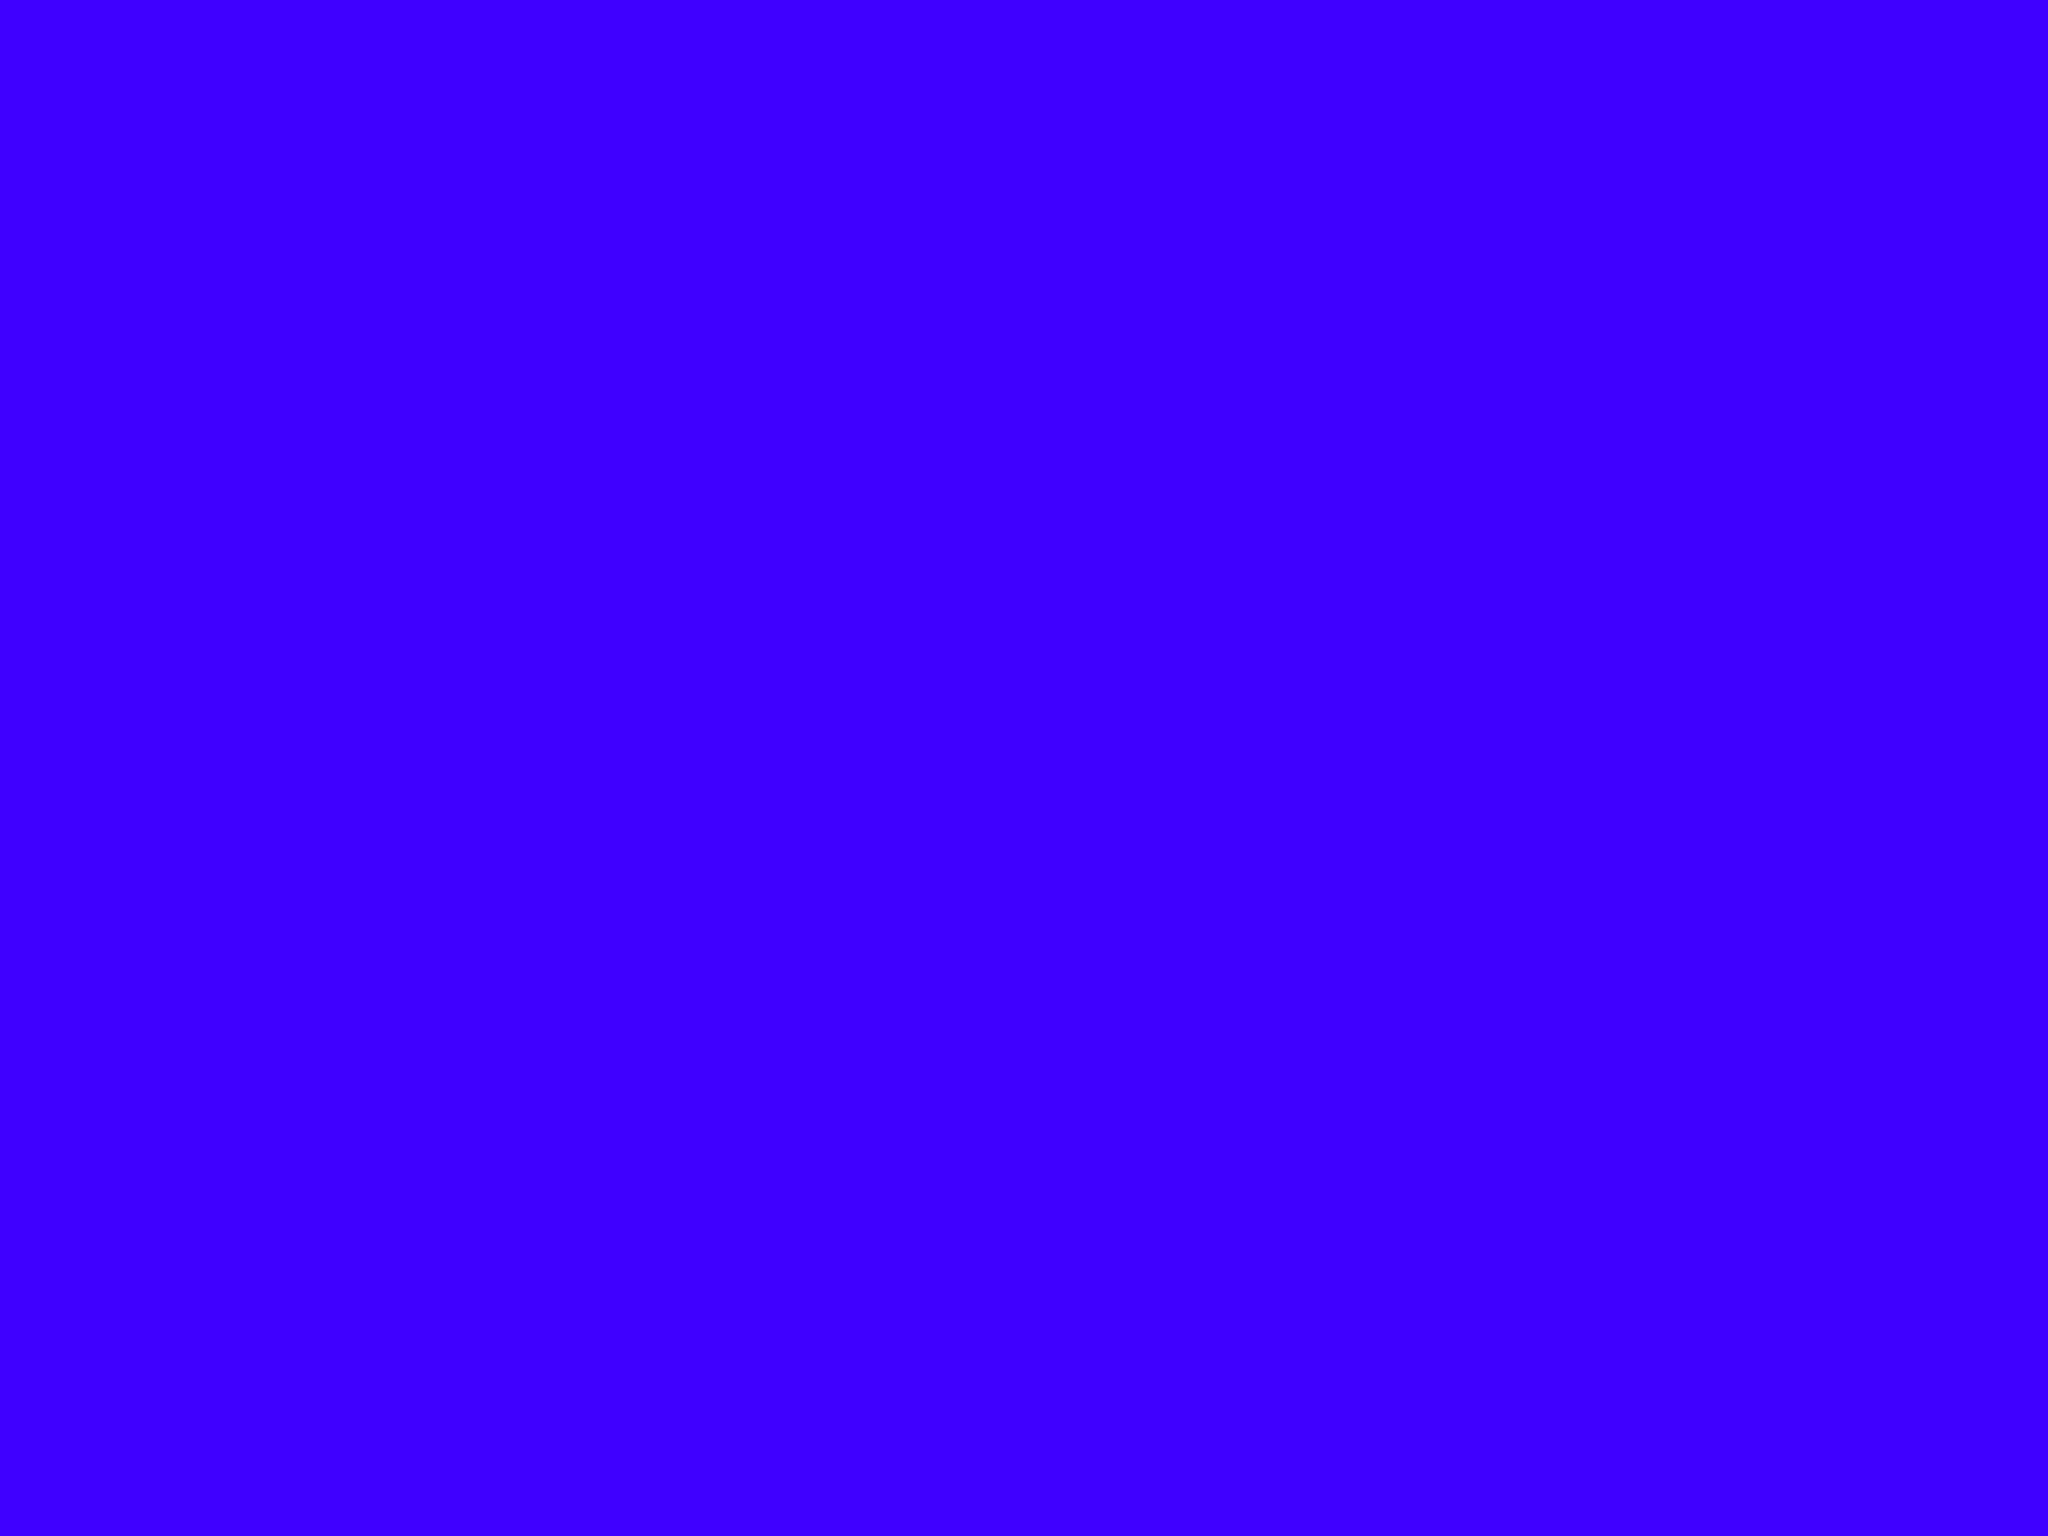 2048x1536 Electric Ultramarine Solid Color Background